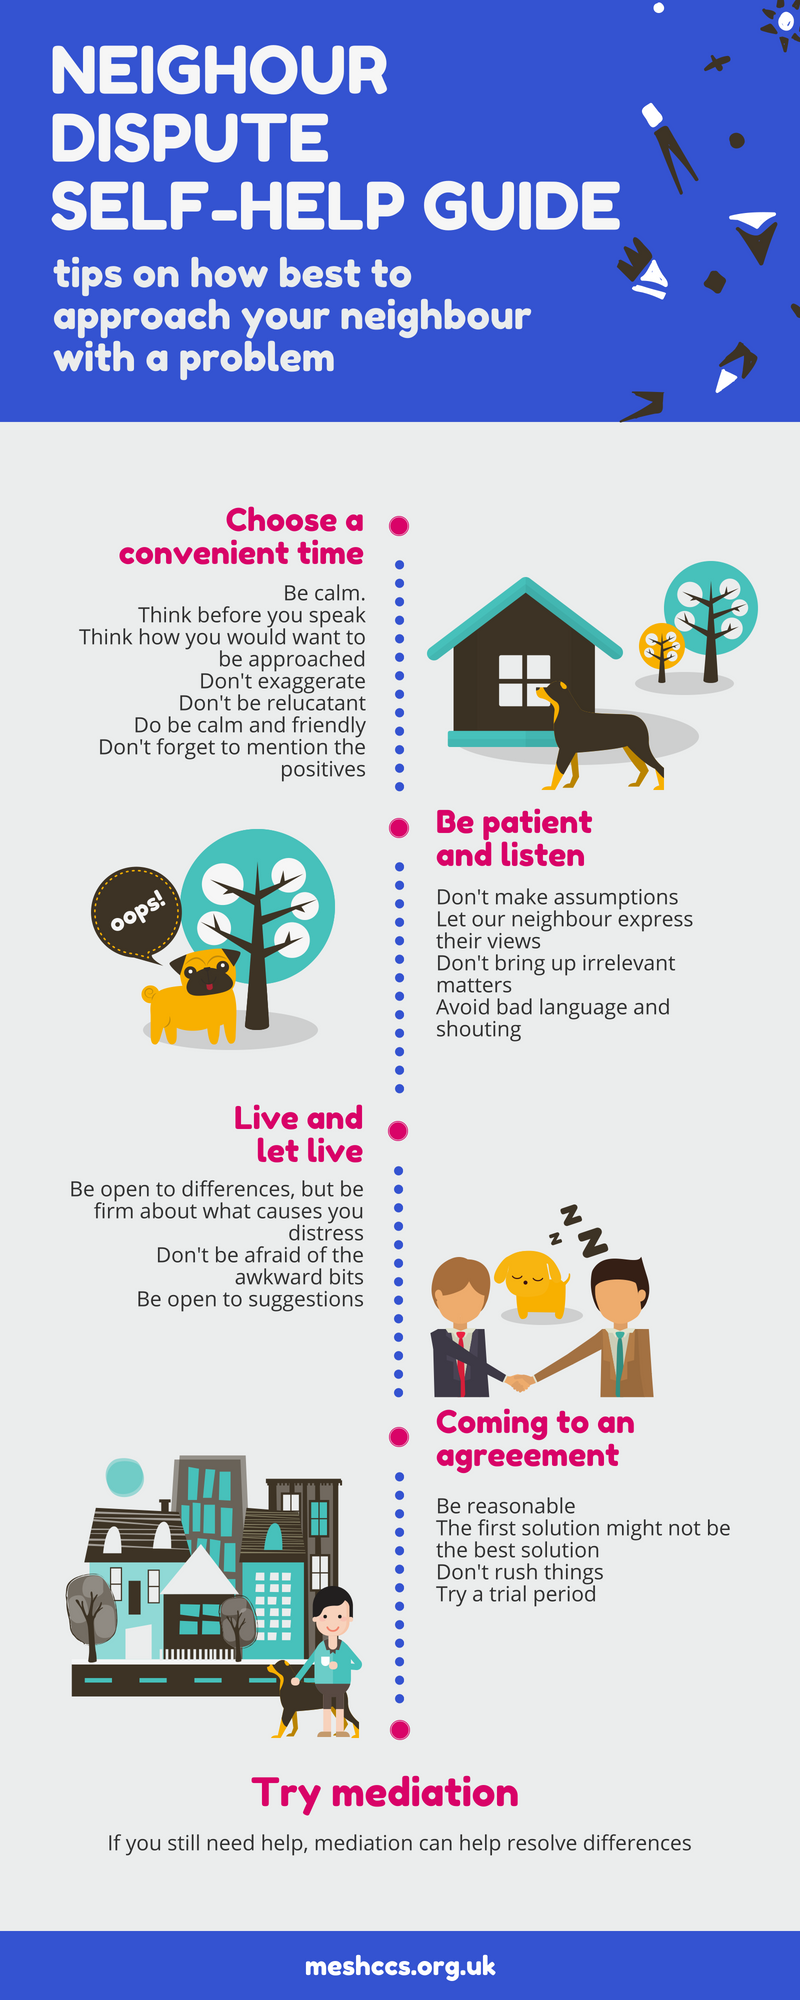 MESH Neighbour Dispute Self-Help Guide - Infographic.png